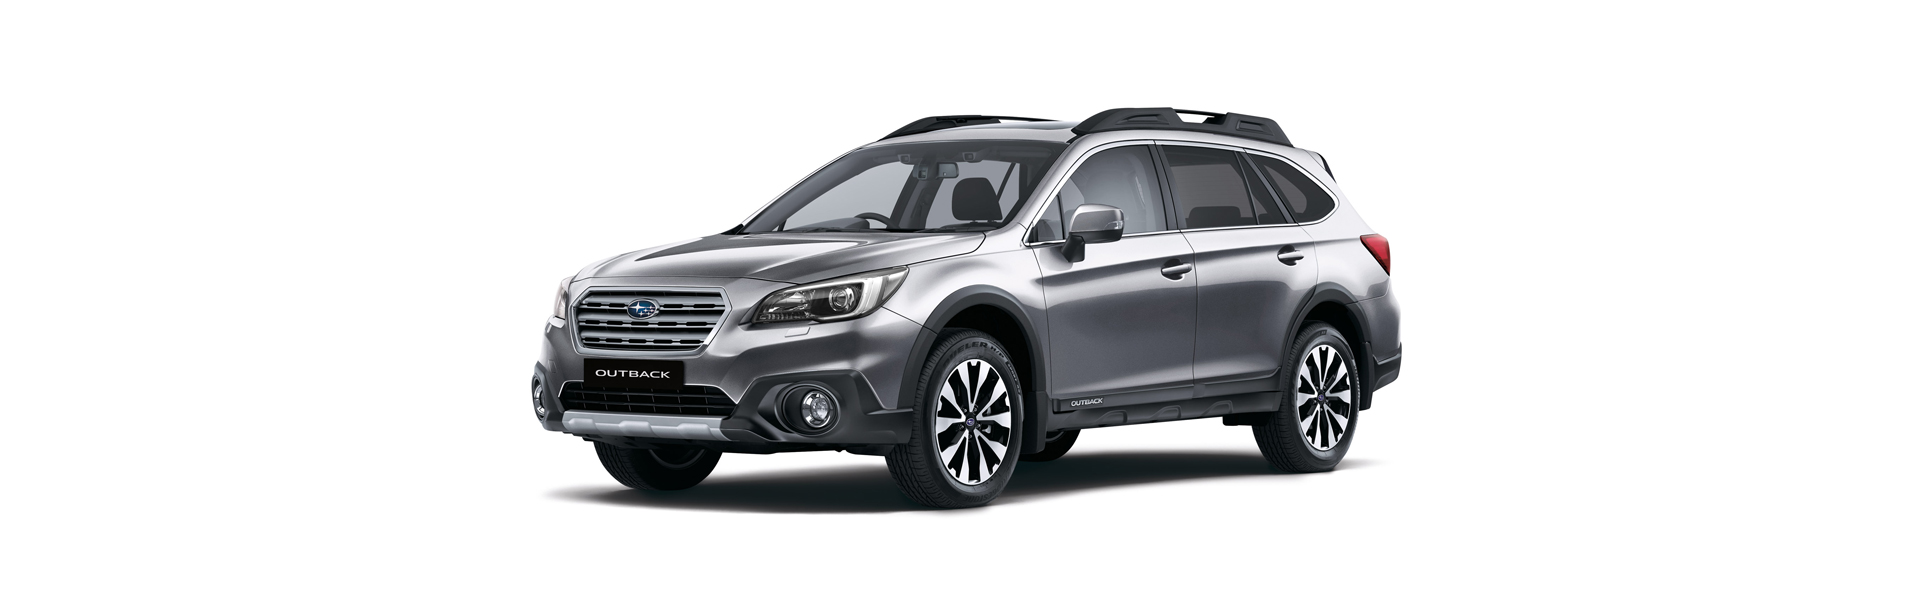 Subaru Outback wins again